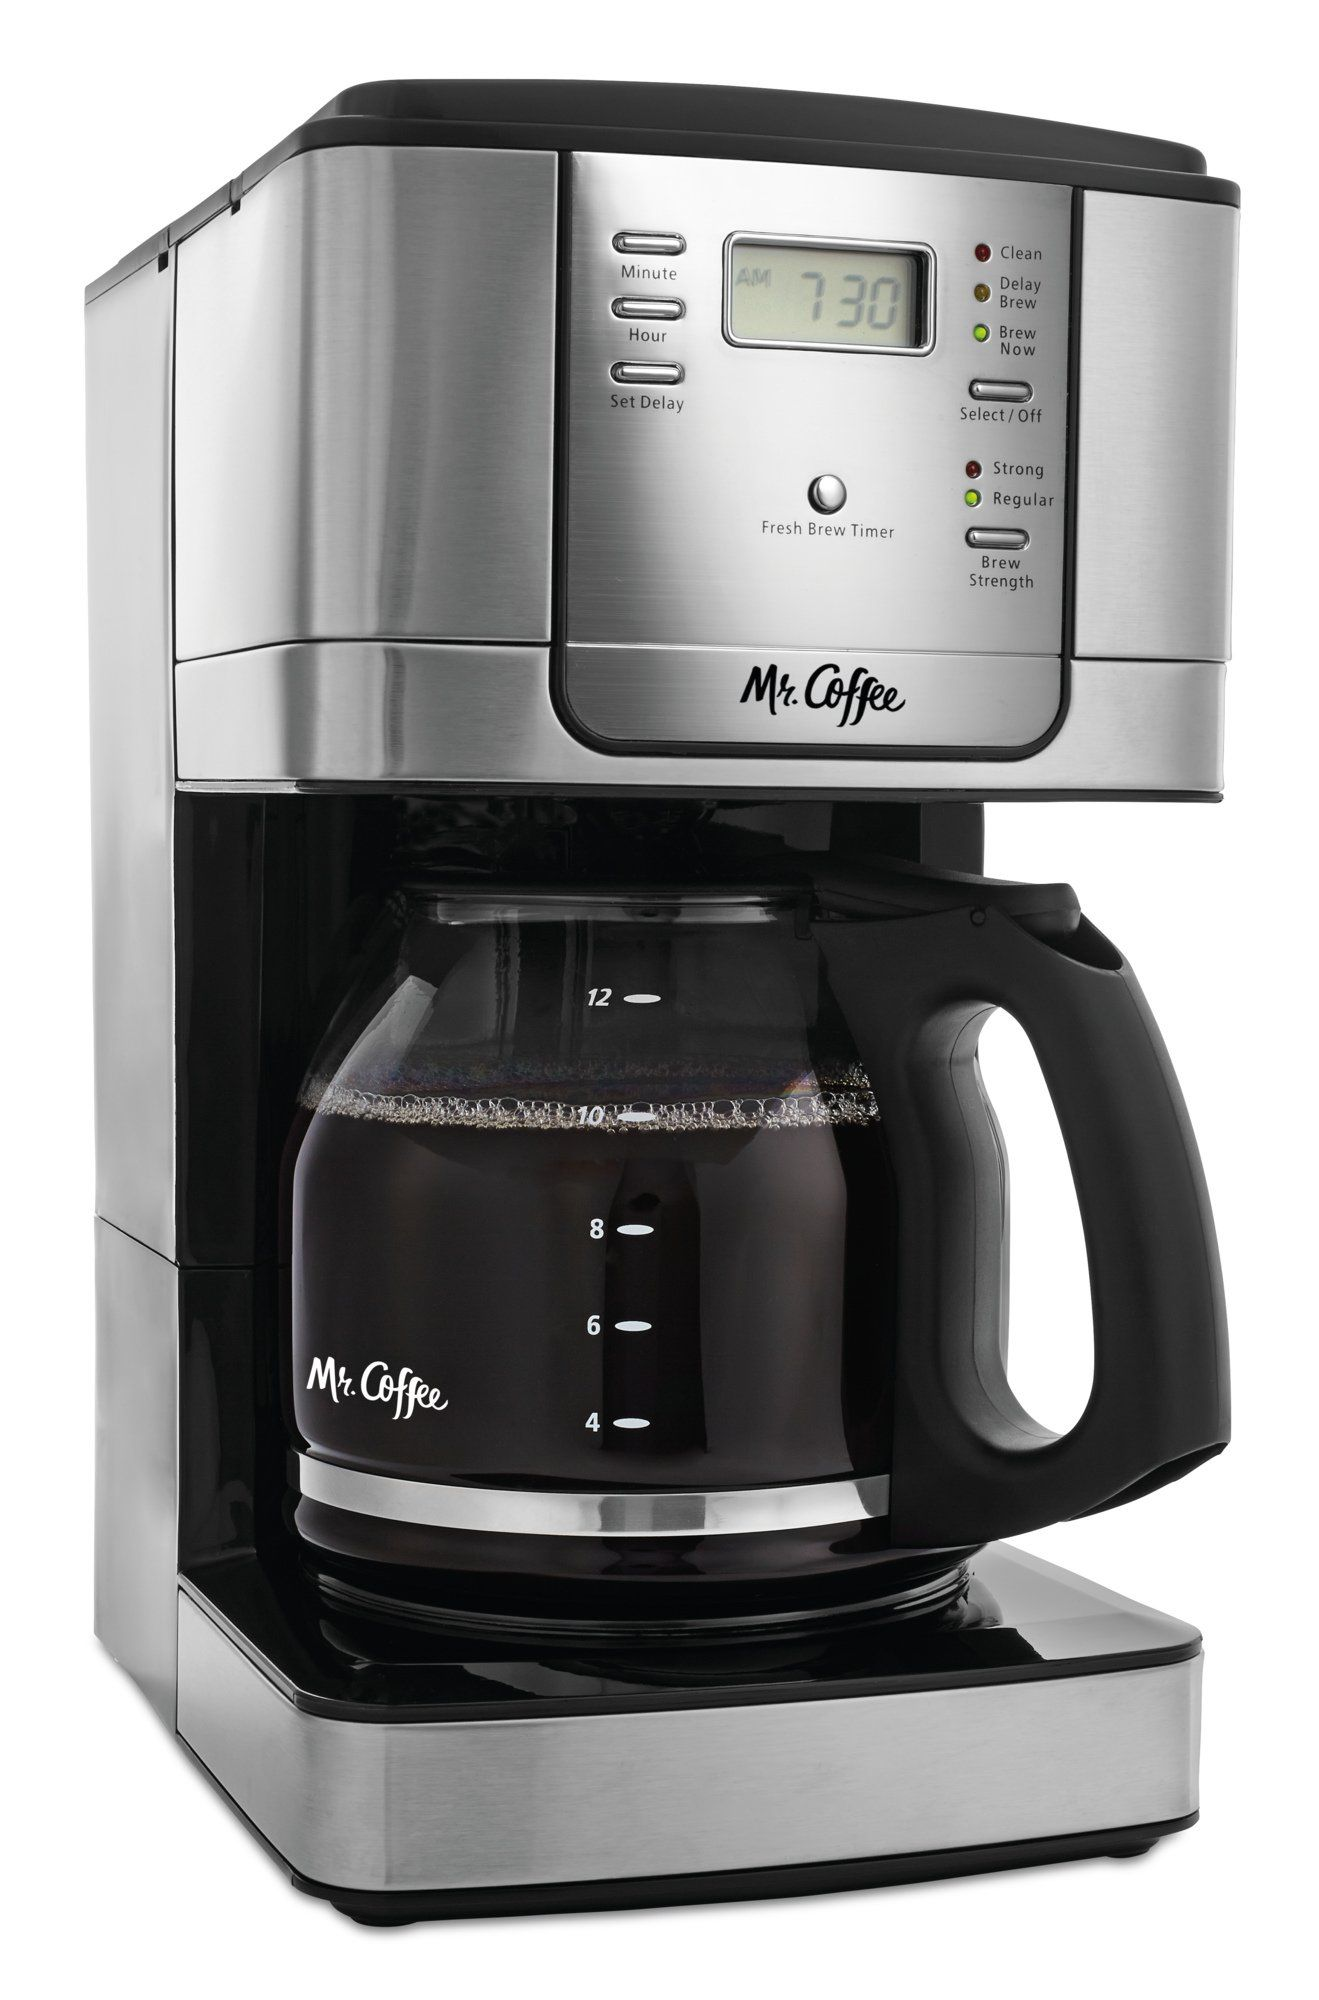 Mr. Coffee 12Cup Programmable Coffee Maker Stainless Steel